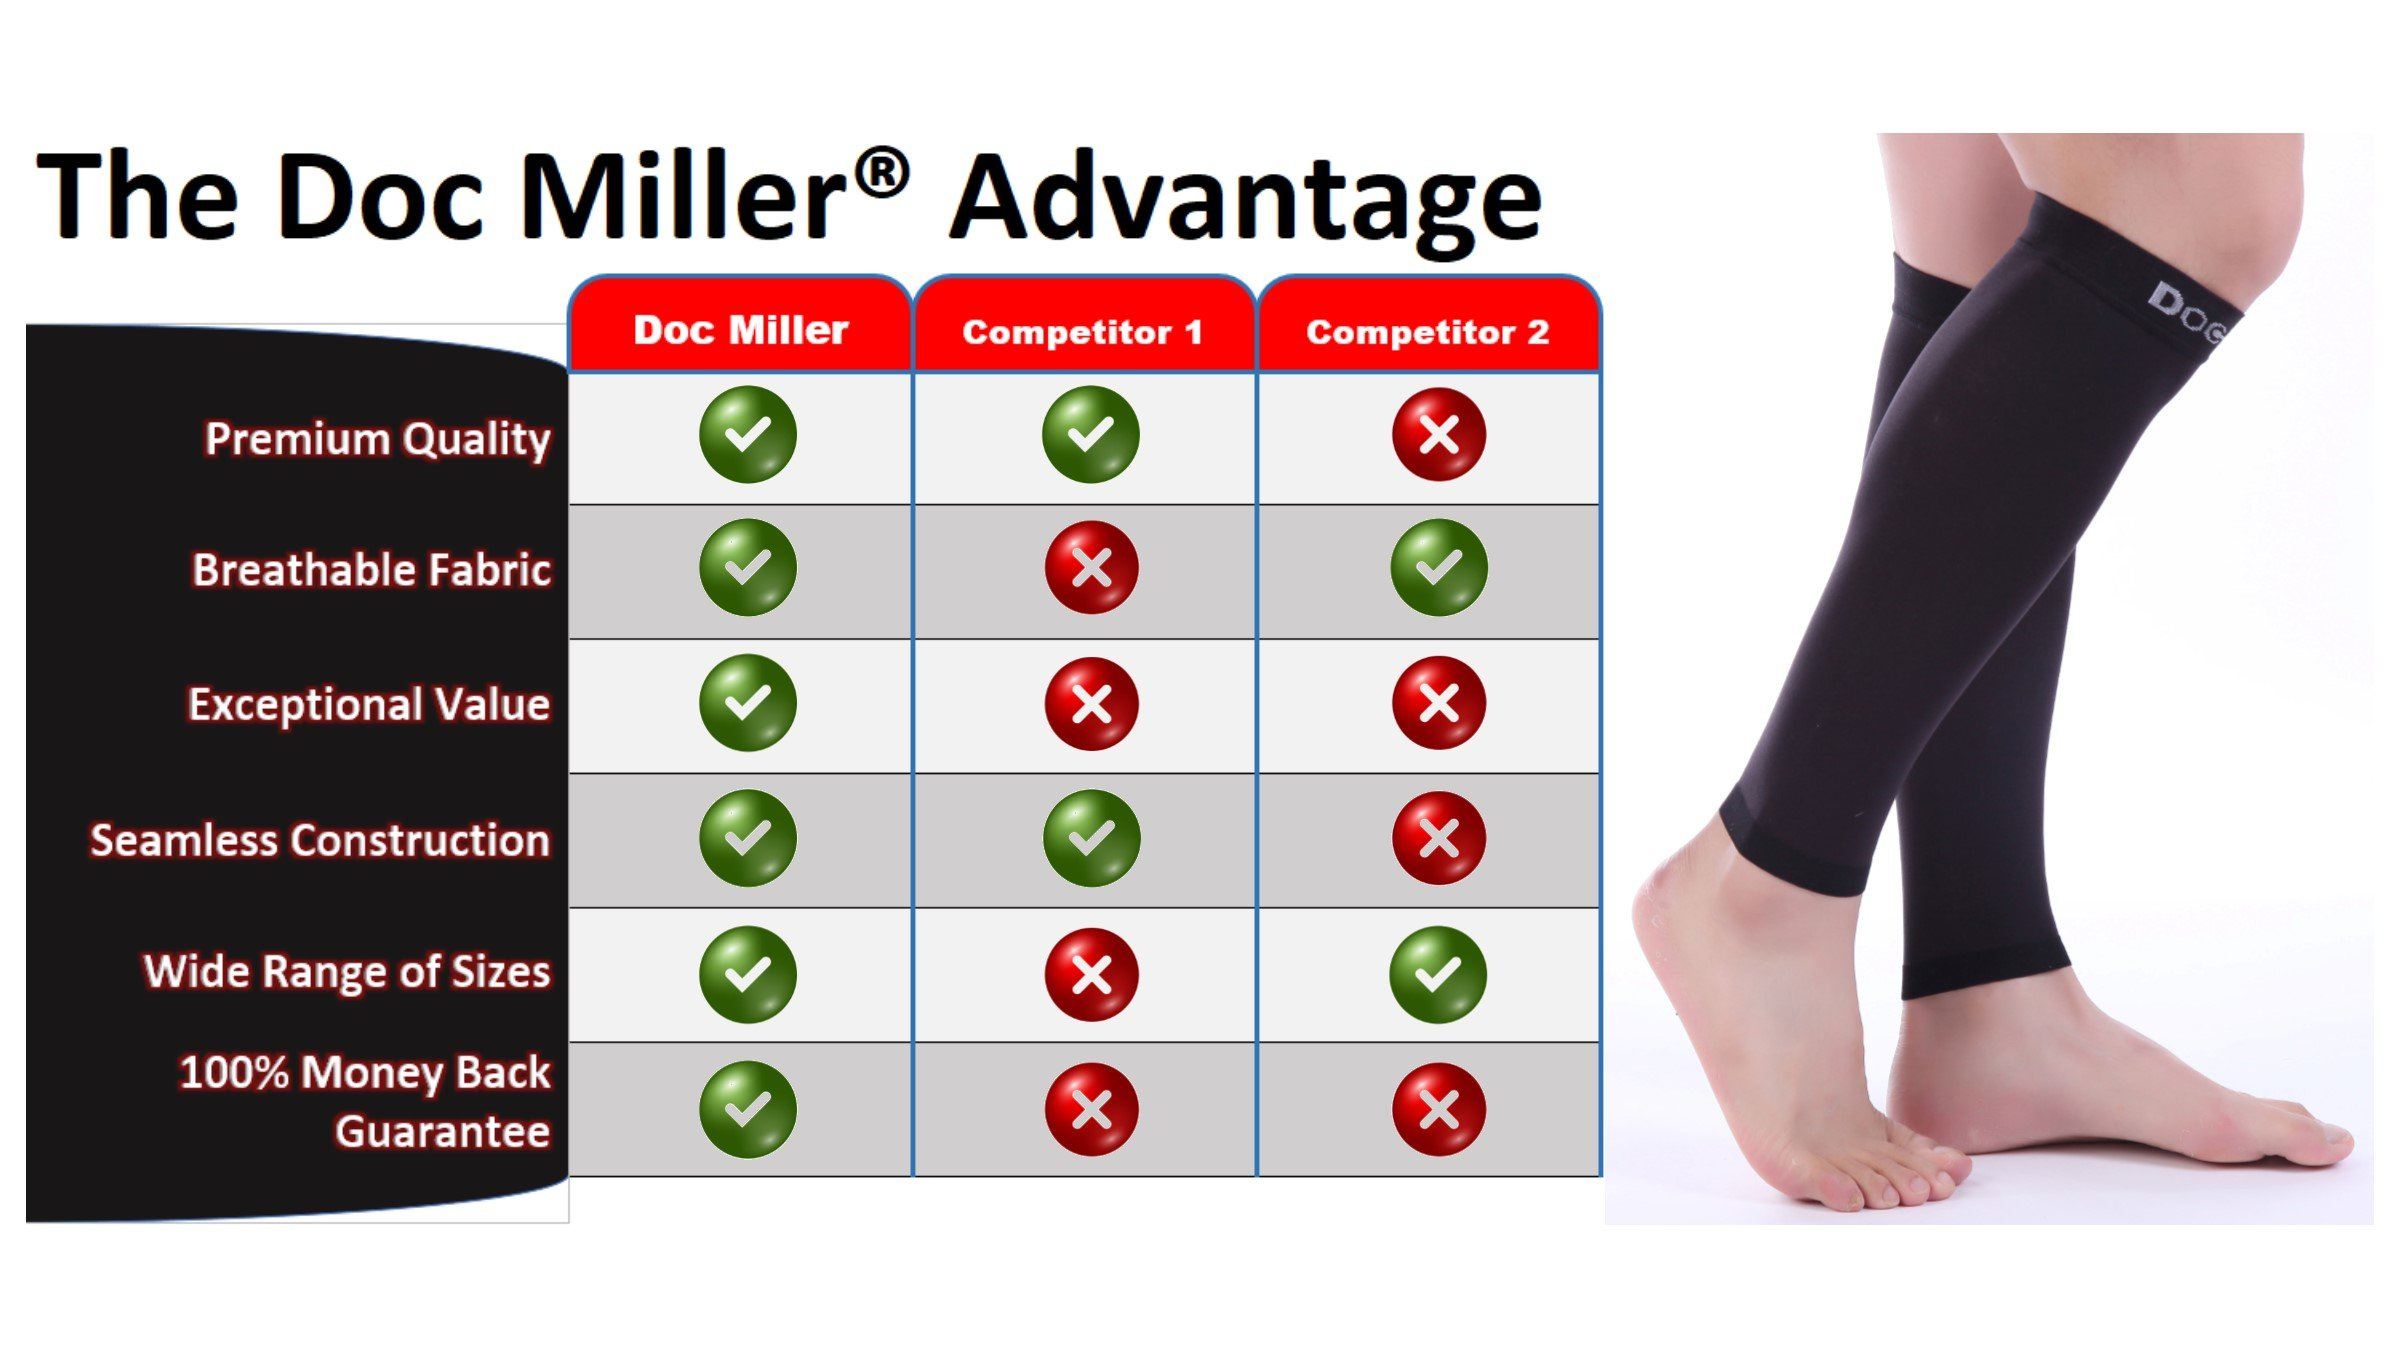 Doc Miller Premium Calf Compression Sleeve 1 Pair 20-30mmHg Strong Calf Support Graduated Pressure for Sports Running Muscle Recovery Shin Splints Varicose Veins (Black, 2-Pack, Large) by Doc Miller (Image #5)